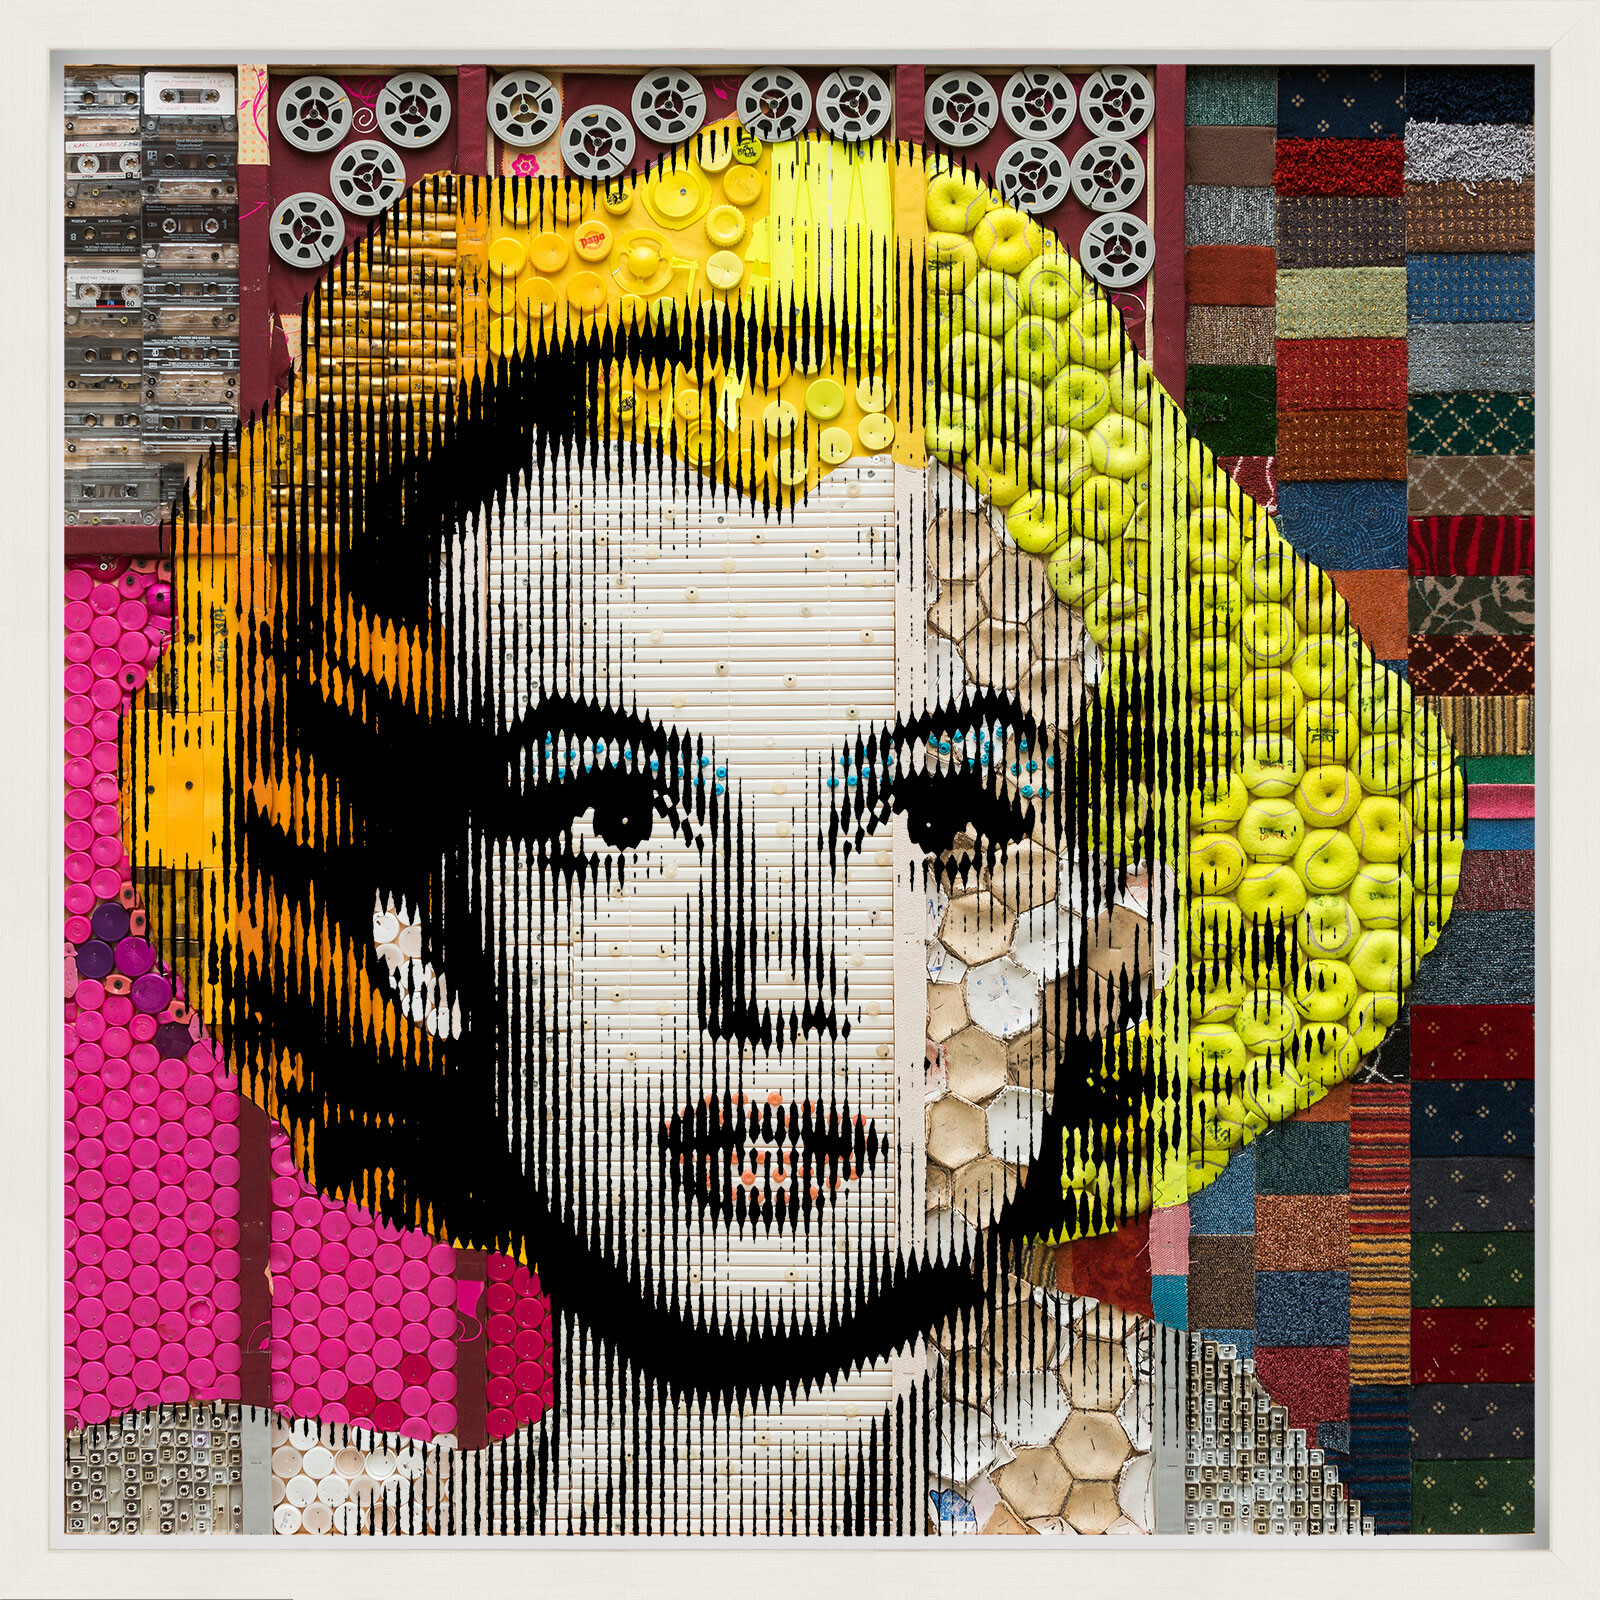 2395e0f9a7a239 Marilyn Monroe by Renaud Delorme. Buy pictures  amp  photo art ...